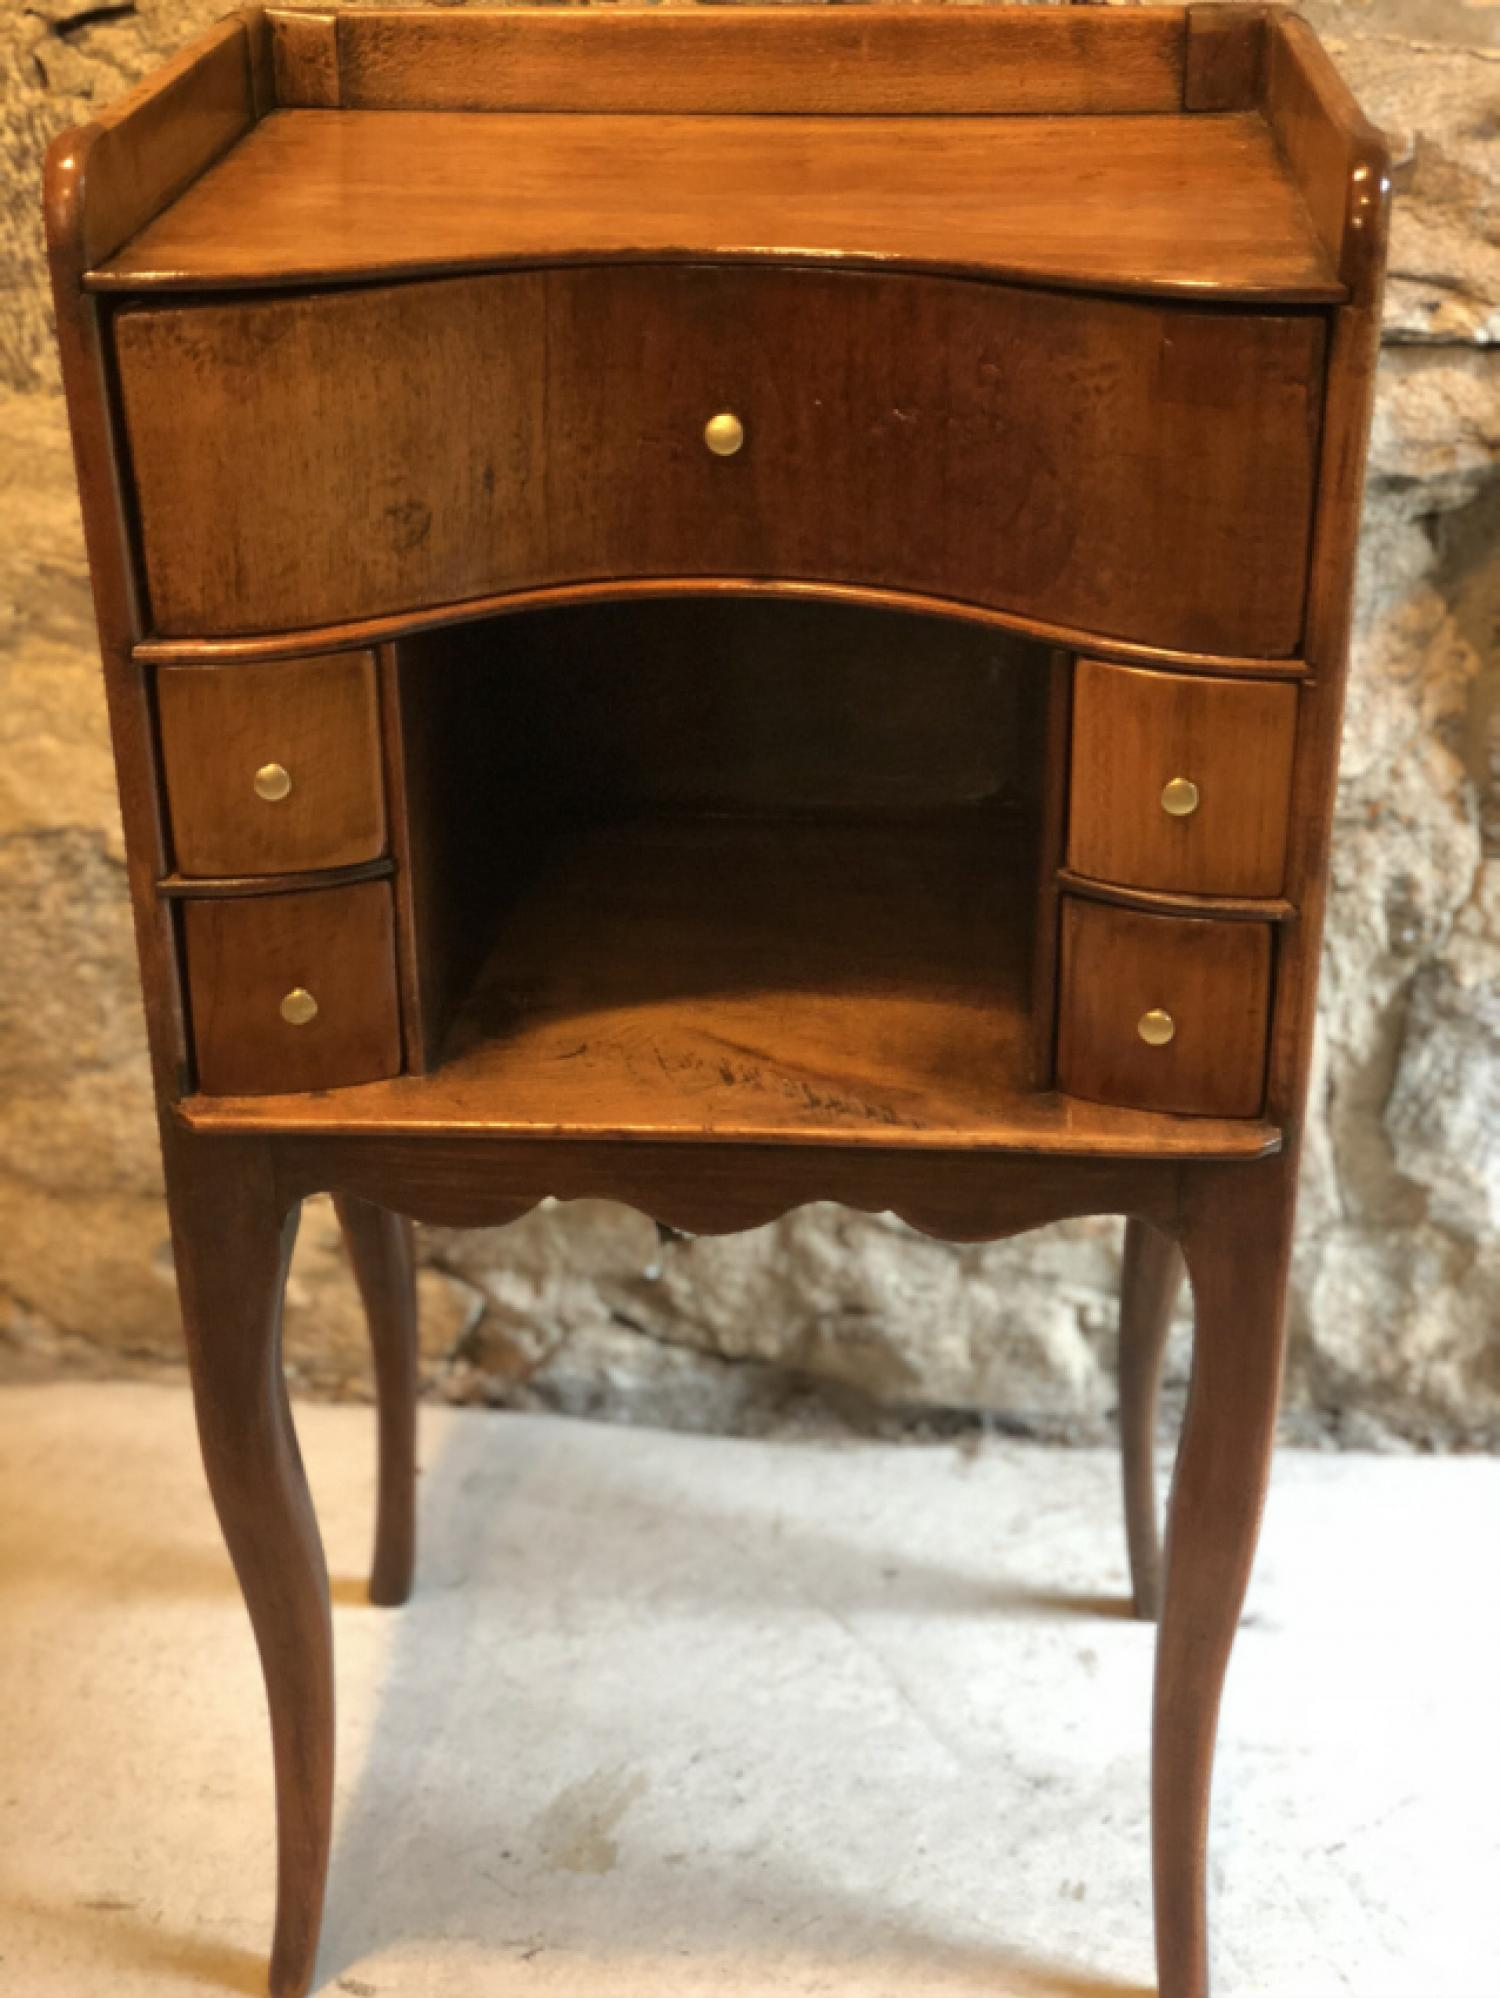 Early 19th century French walnut night stand with multiple drawers